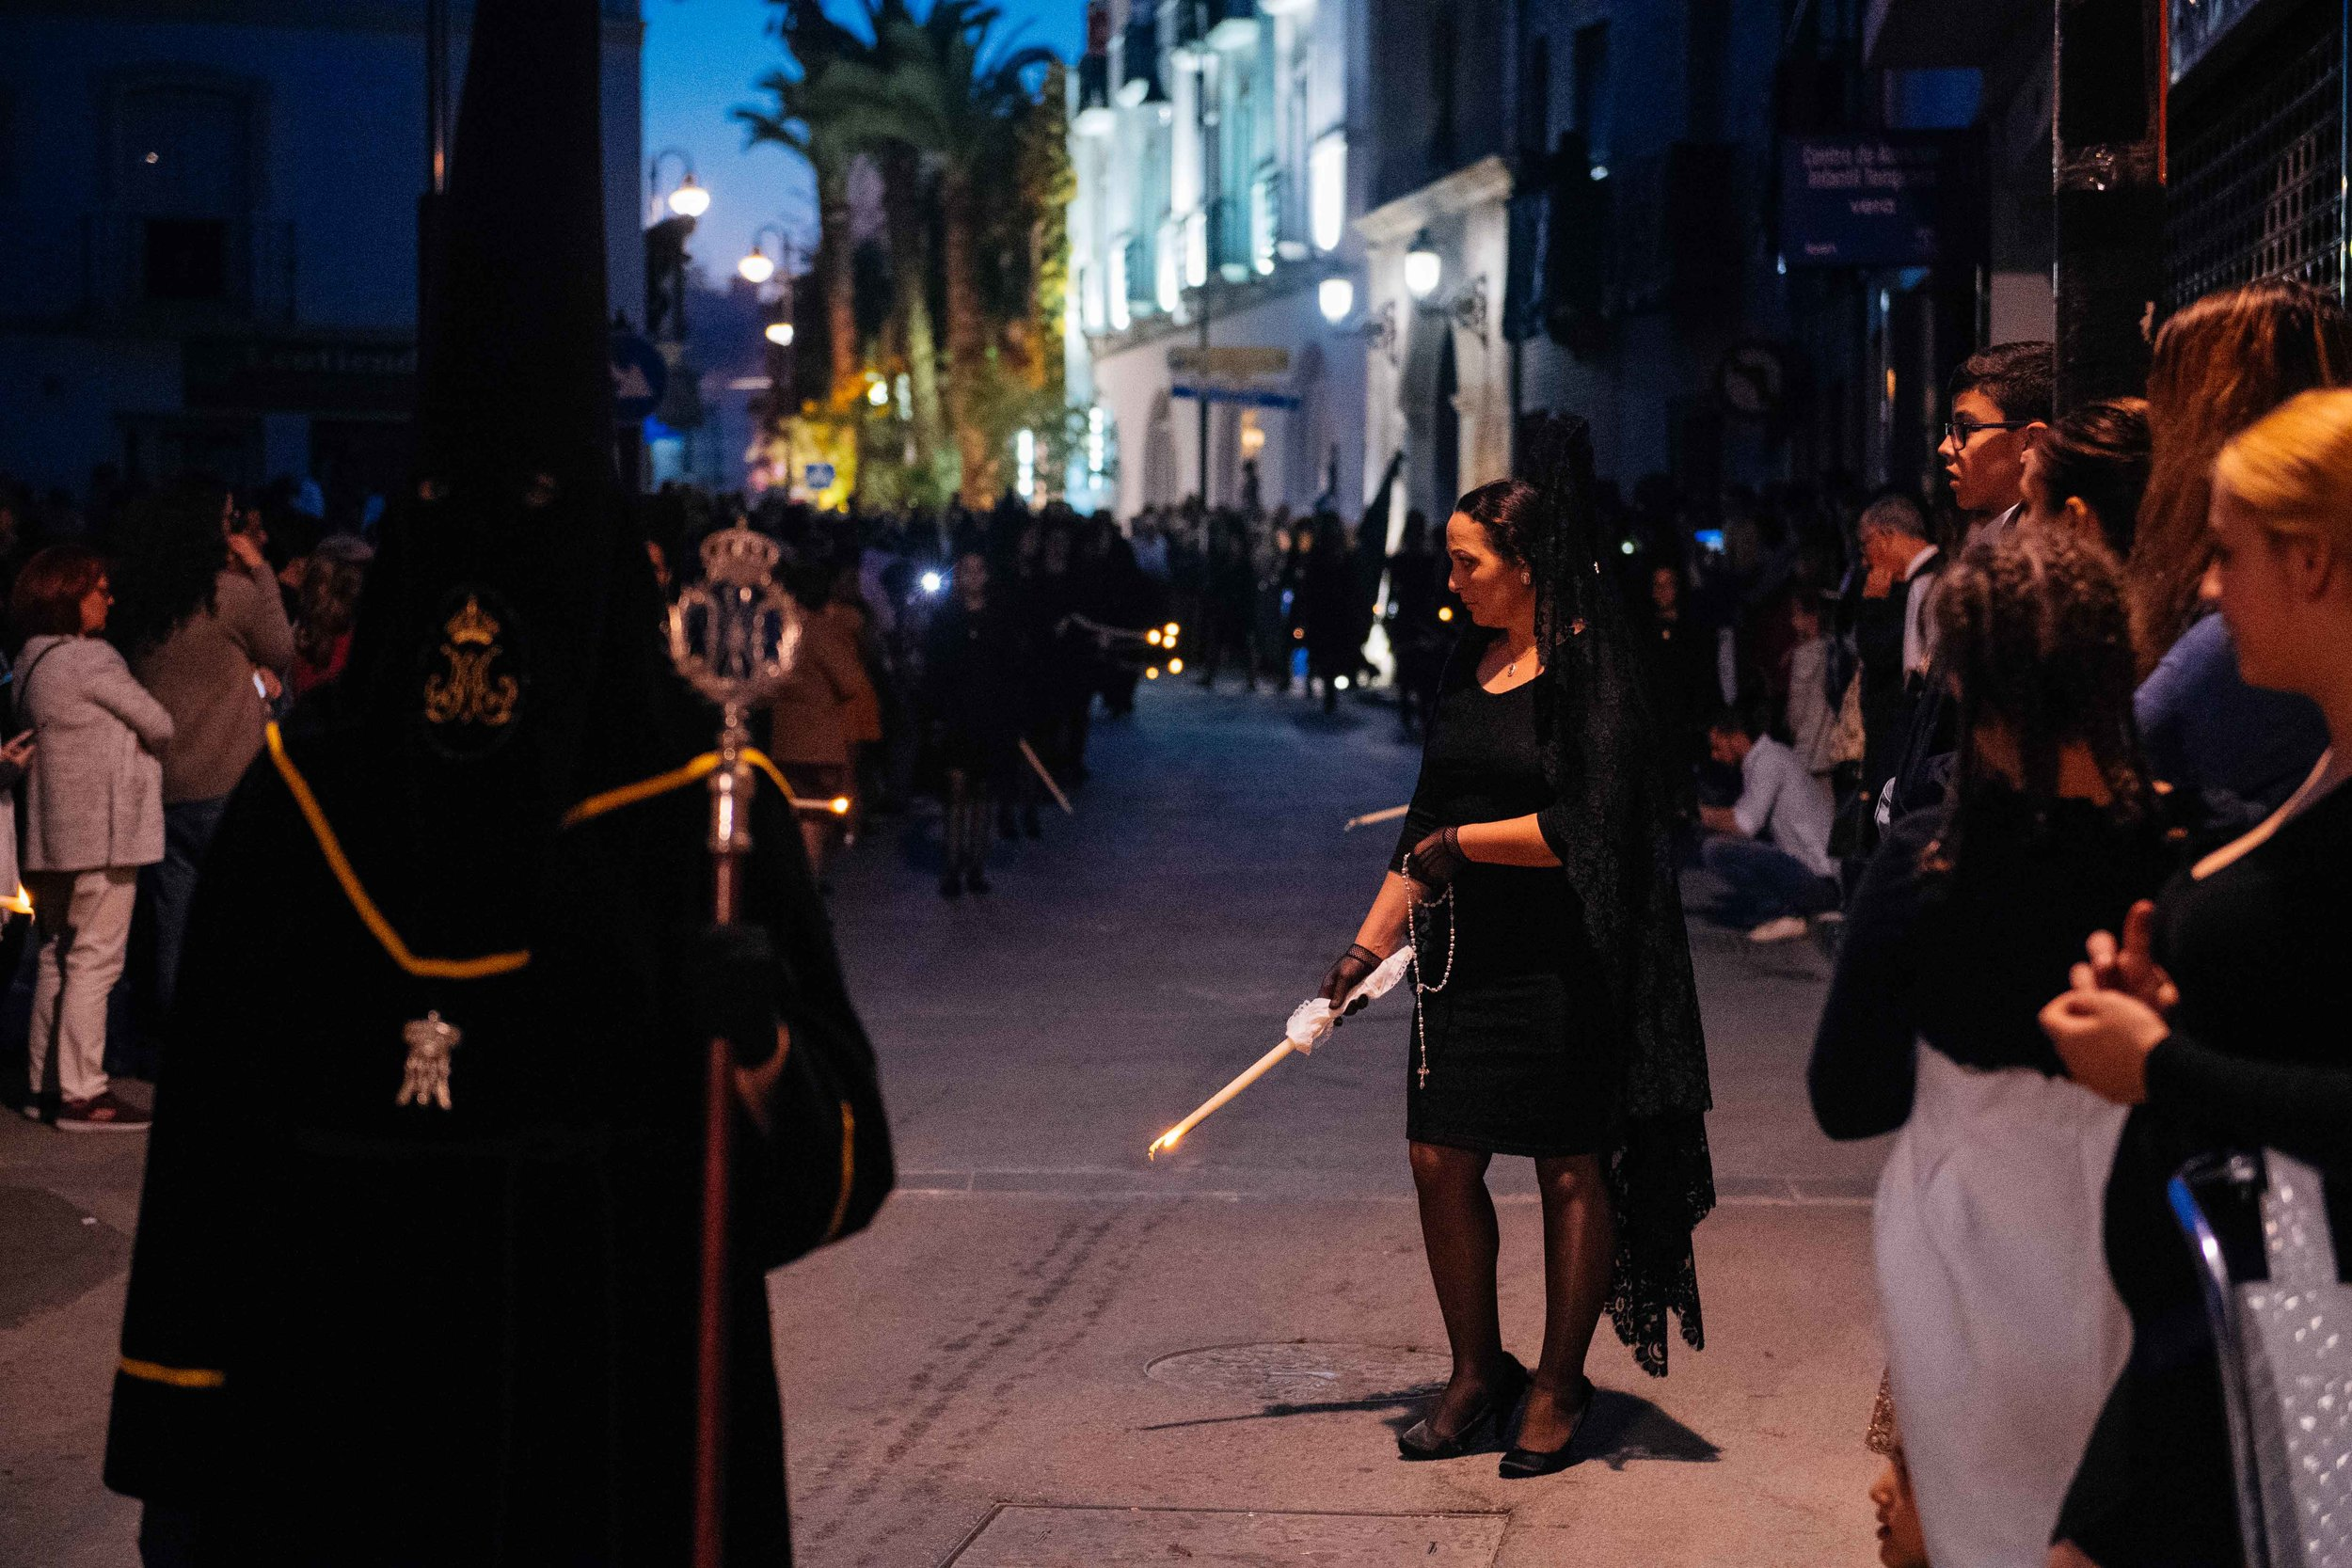 Traditionally, women have participated in the Holy Week processions as mourners, wearing an elegant but sober black dress with a traditional veil.